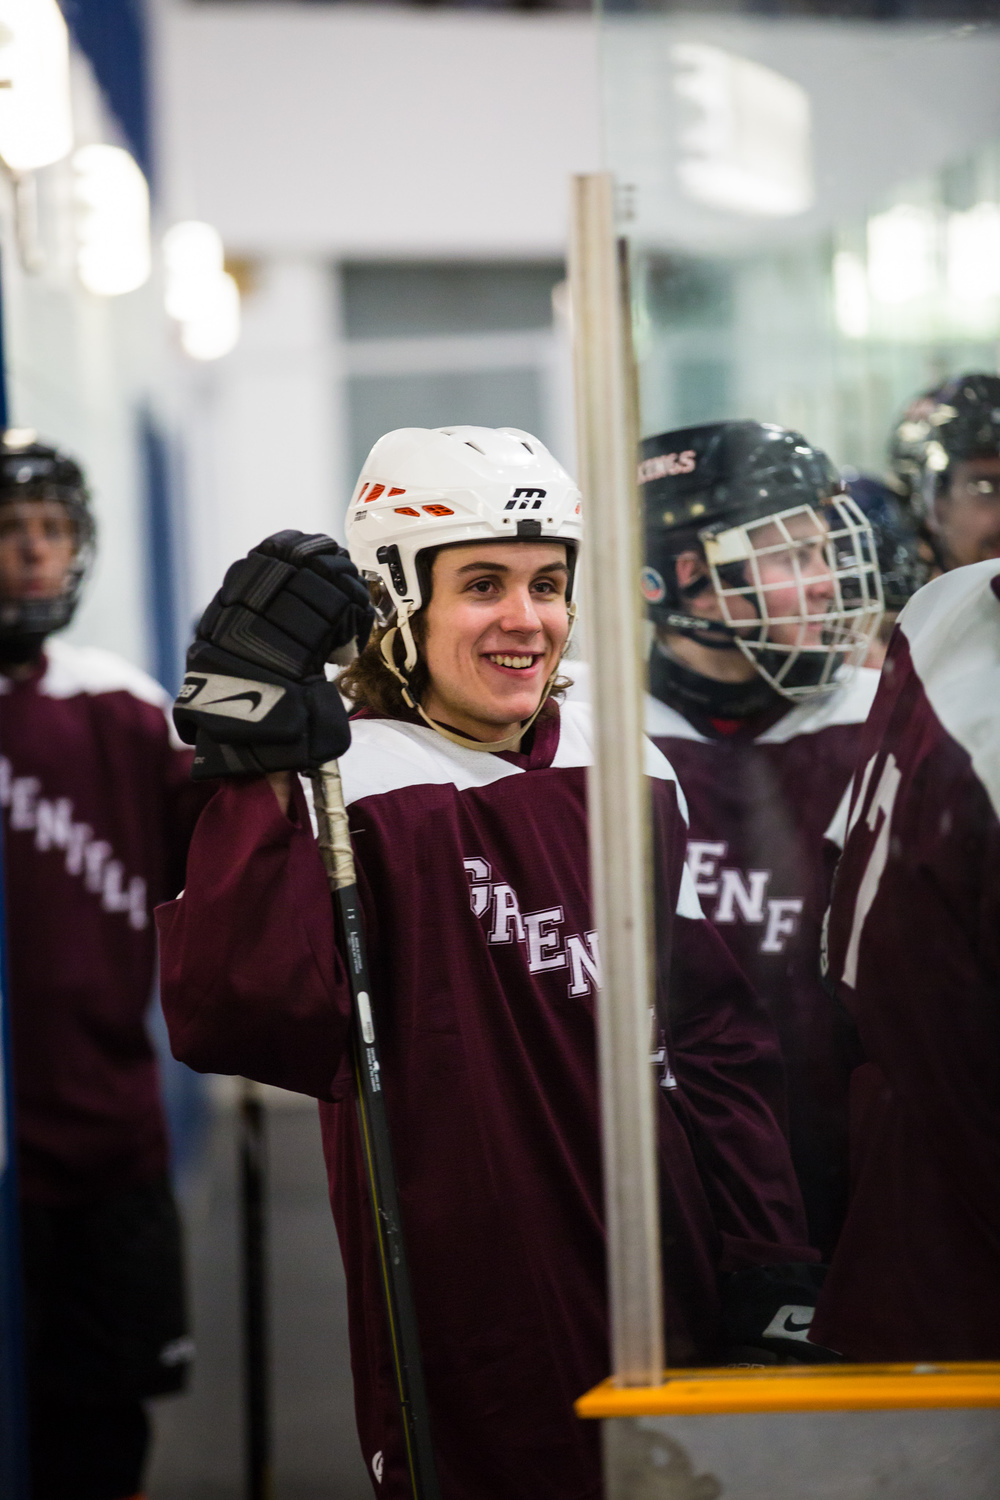 GrenfellCharityHockeyGame2016-April5-2016-72.jpg